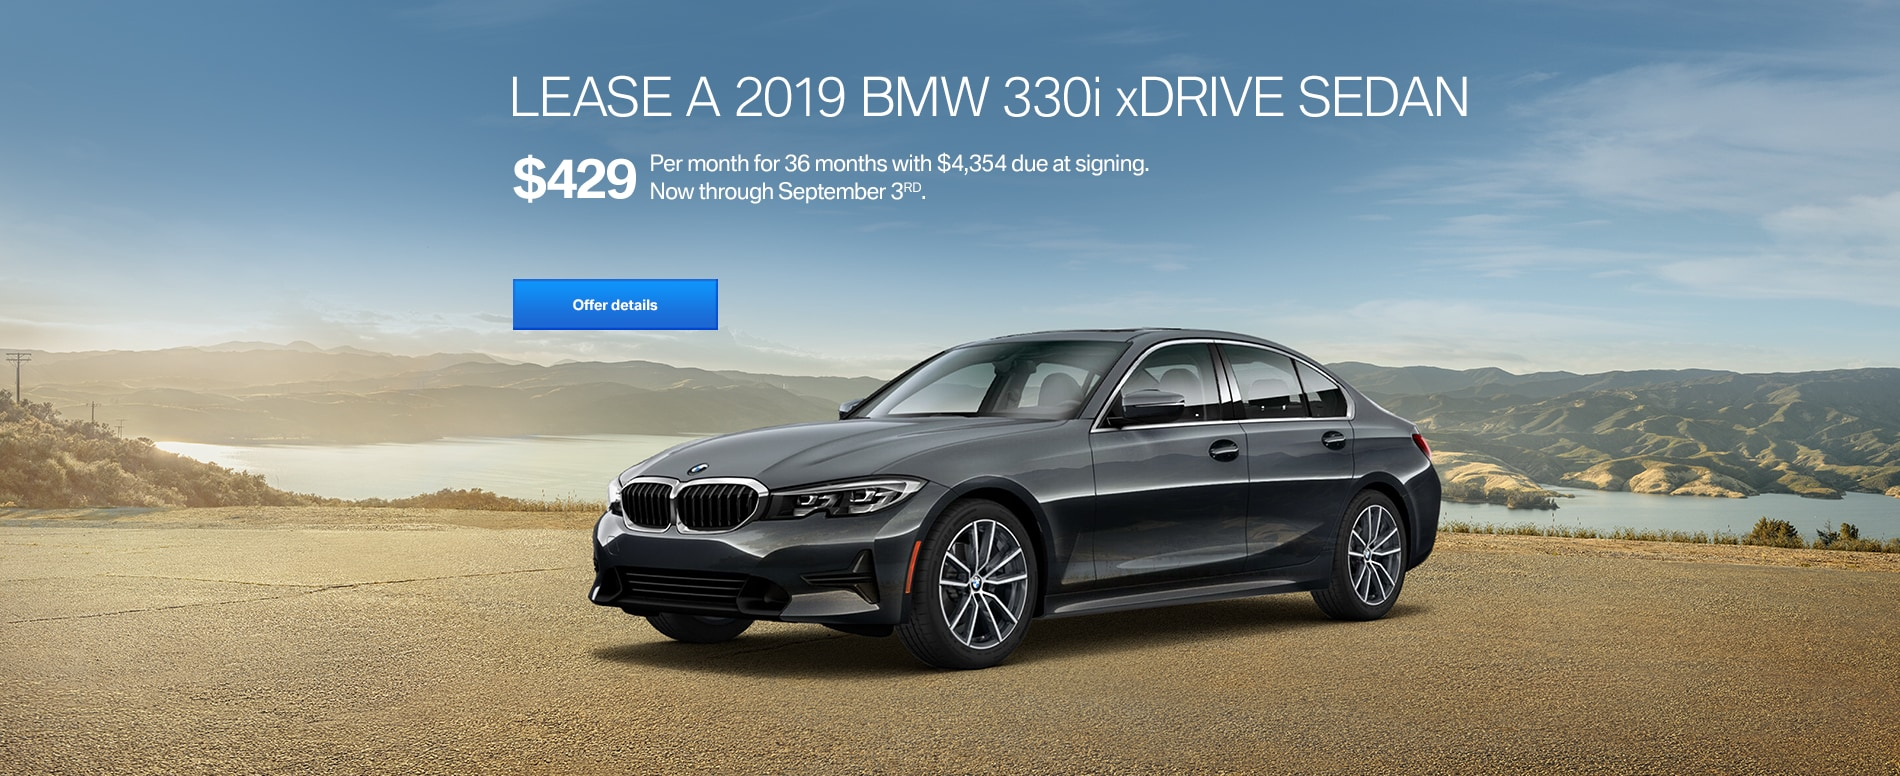 Rockland's South Shore BMW | New and Used BMW Cars